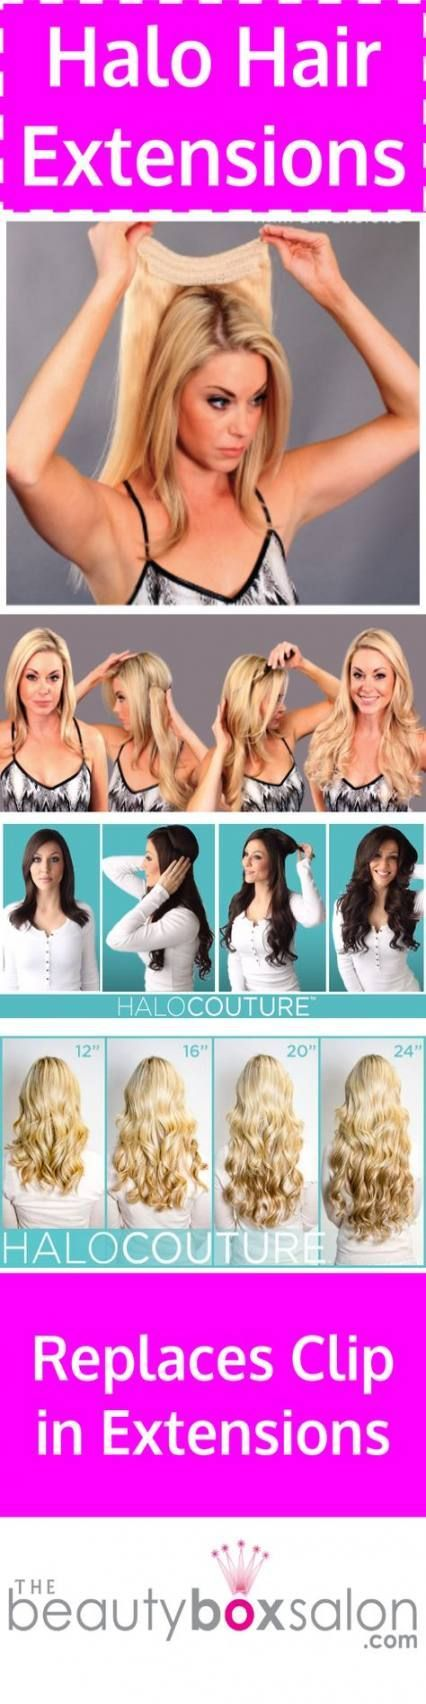 41 Ideas Hair Extensions Halo Wedding Hairstyles For 2019